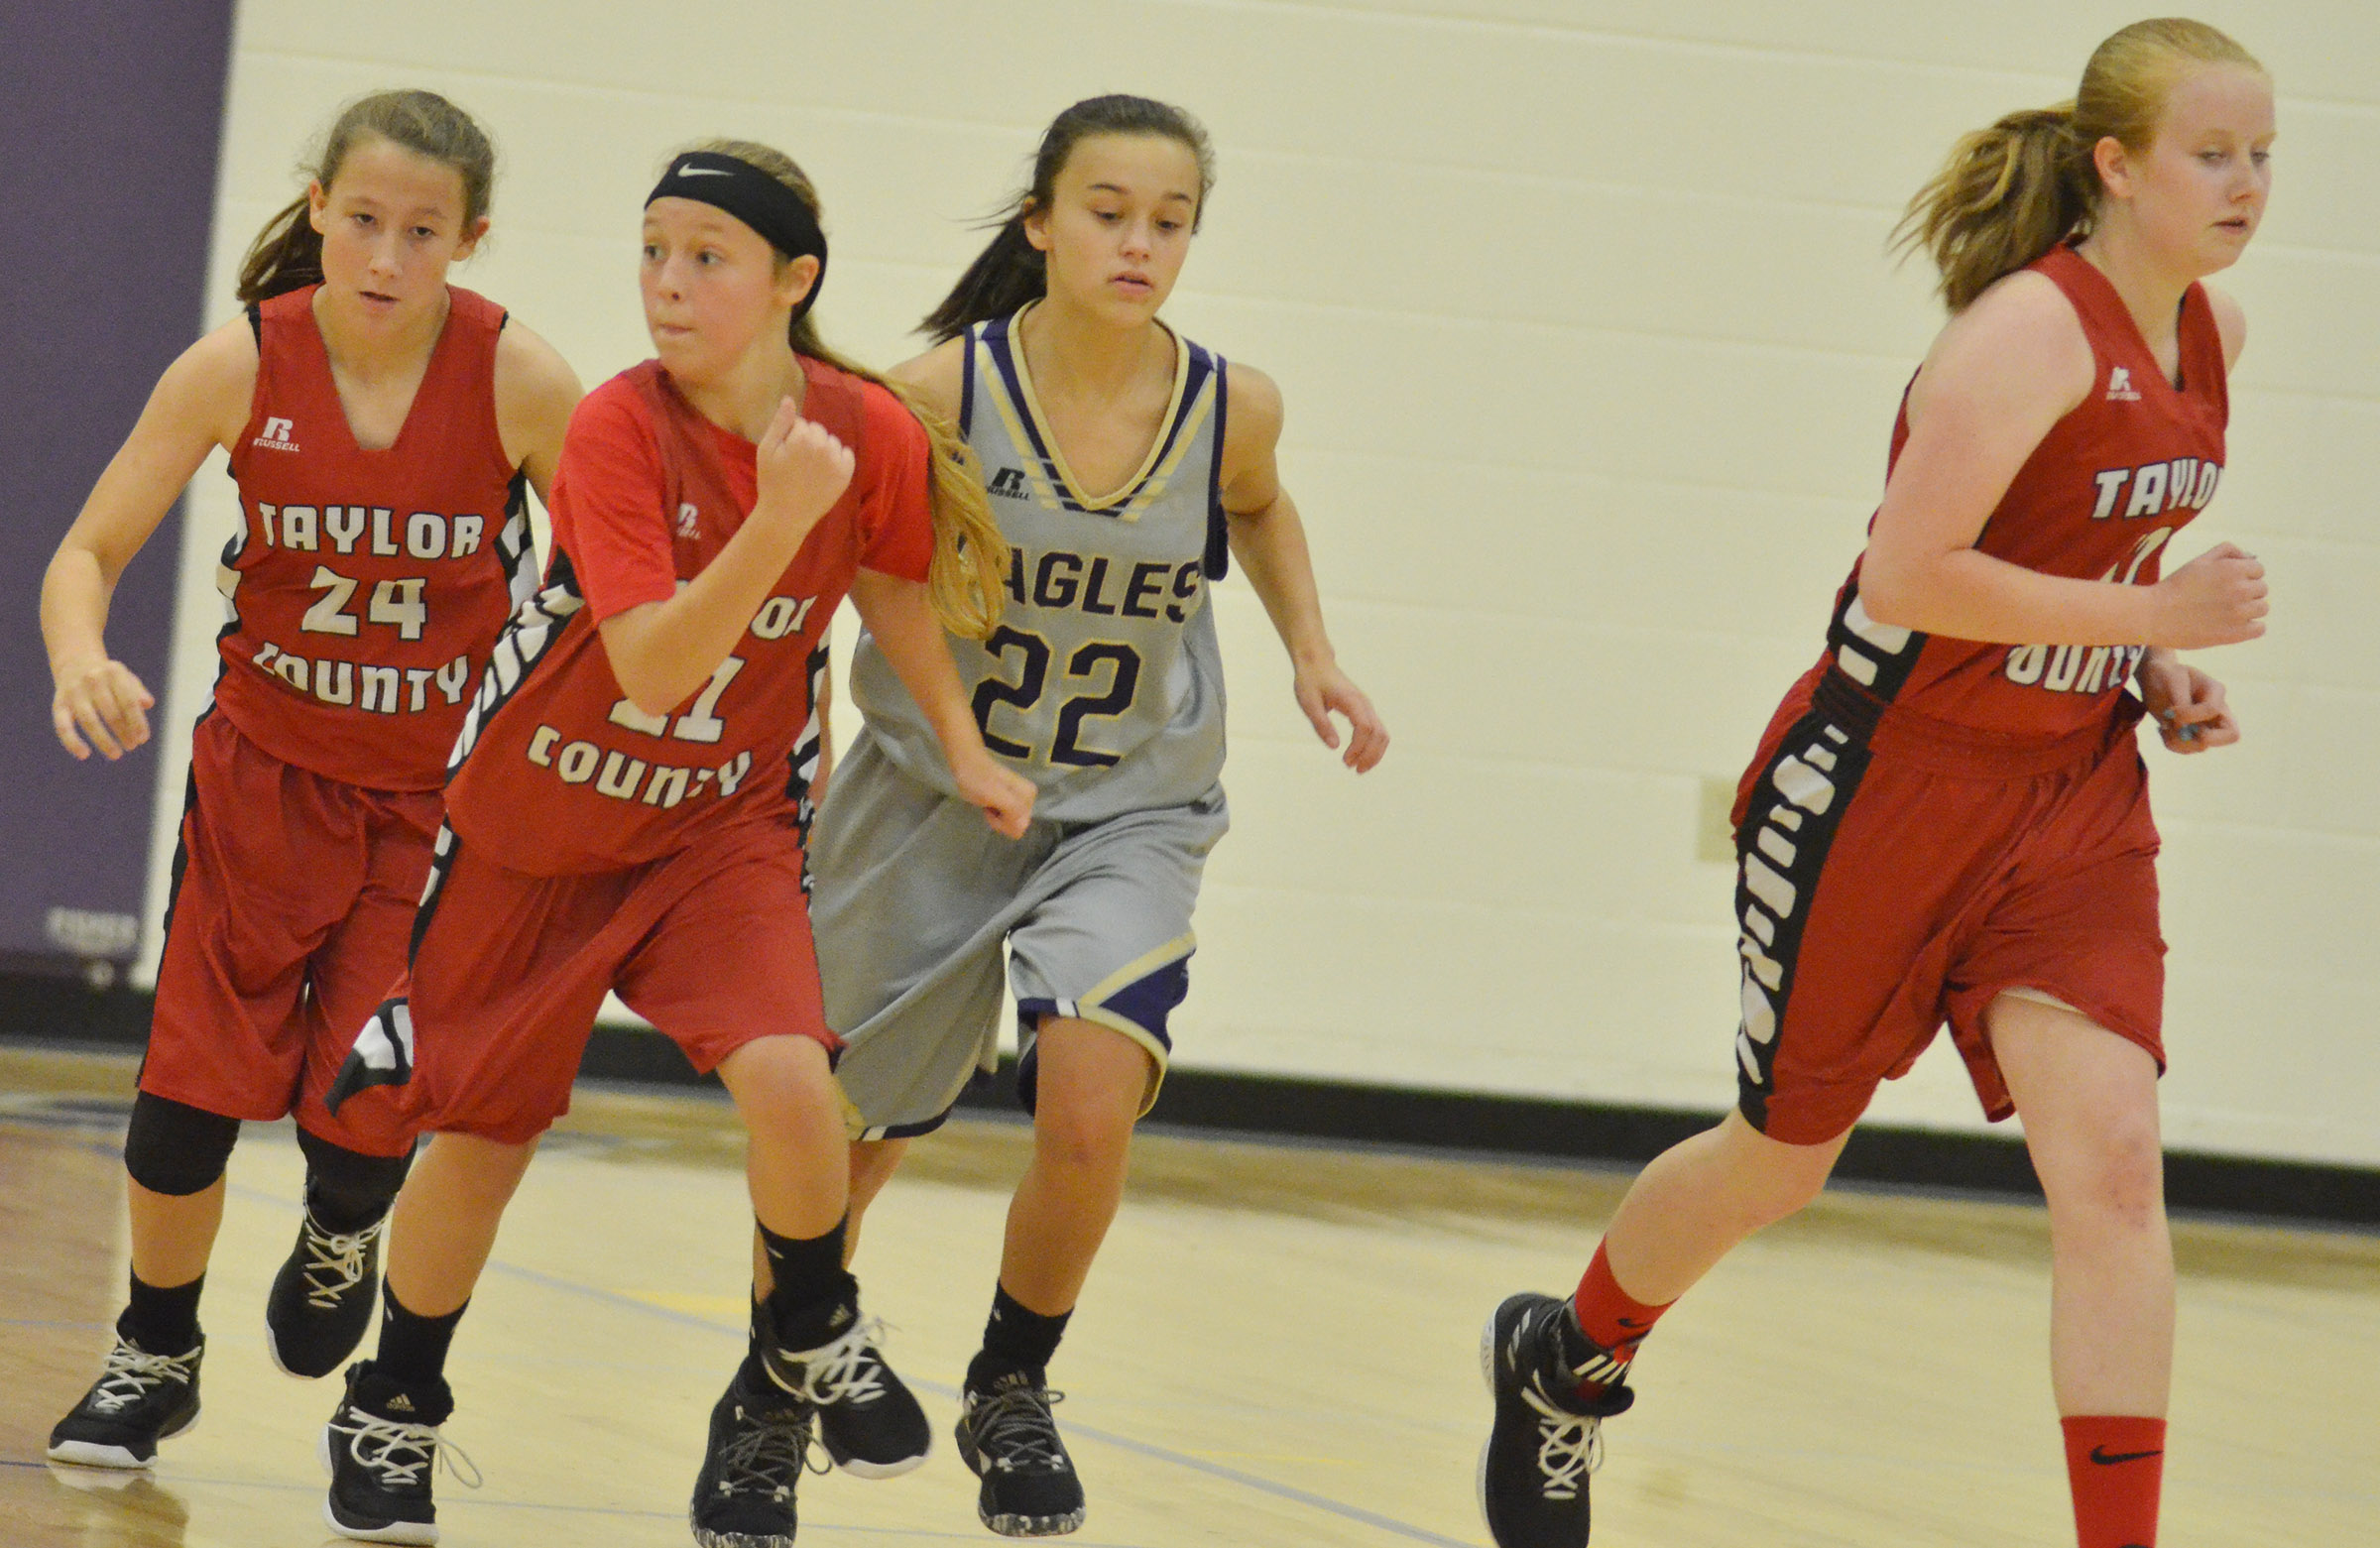 CMS eighth-grader Tayler Thompson runs down court.